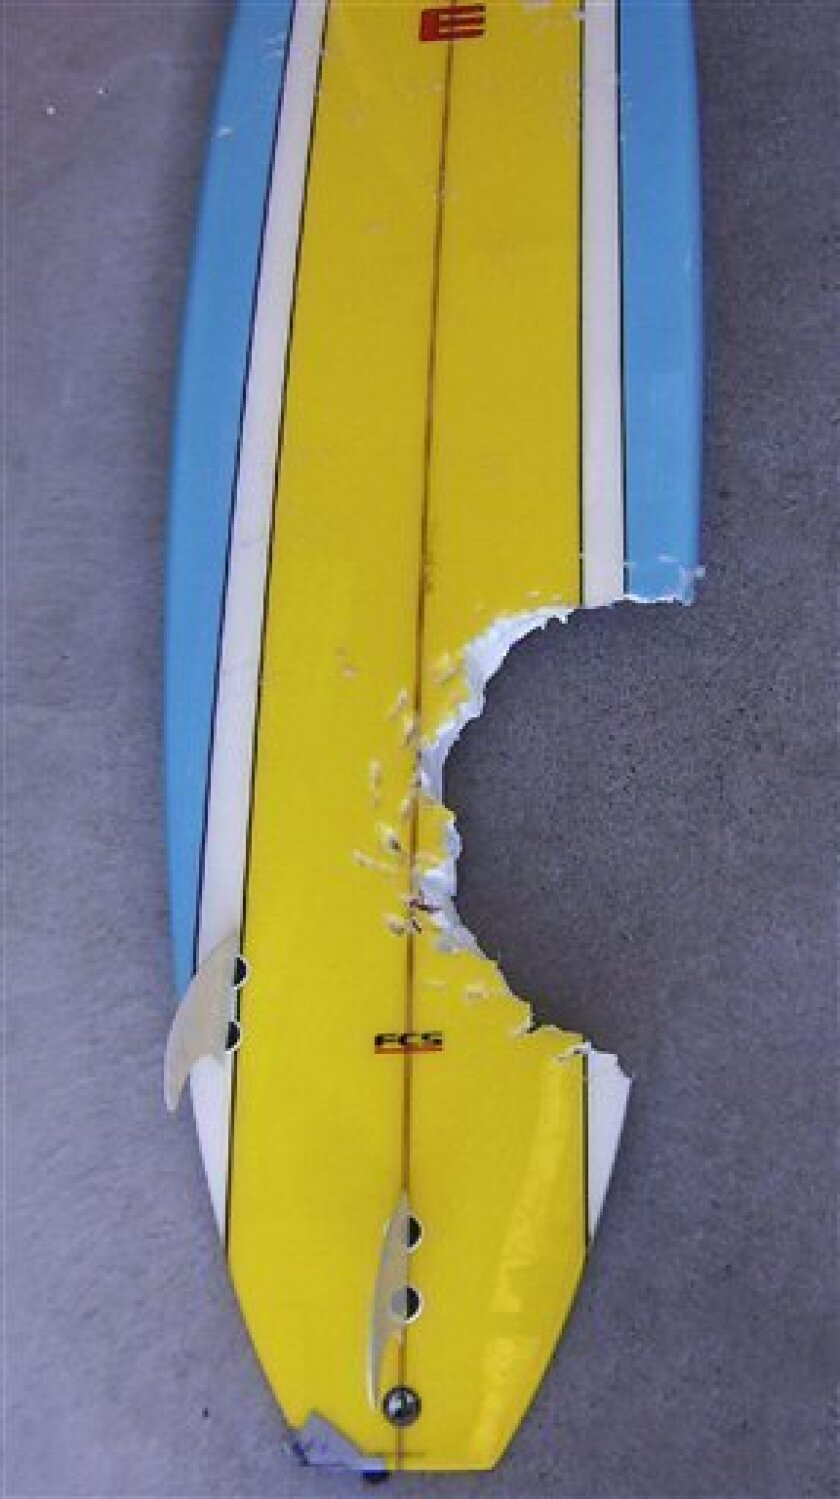 In this photo released by Tasmania Police and distributed via AAP Image, a surfboard which had a chunk taken out of it by a great white shark in Binalong Bay, Tasmania, Australia, Jan. 11, 2009 is shown. Across Australia, edgy beachgoers are questioning their safety following a string of attacks an